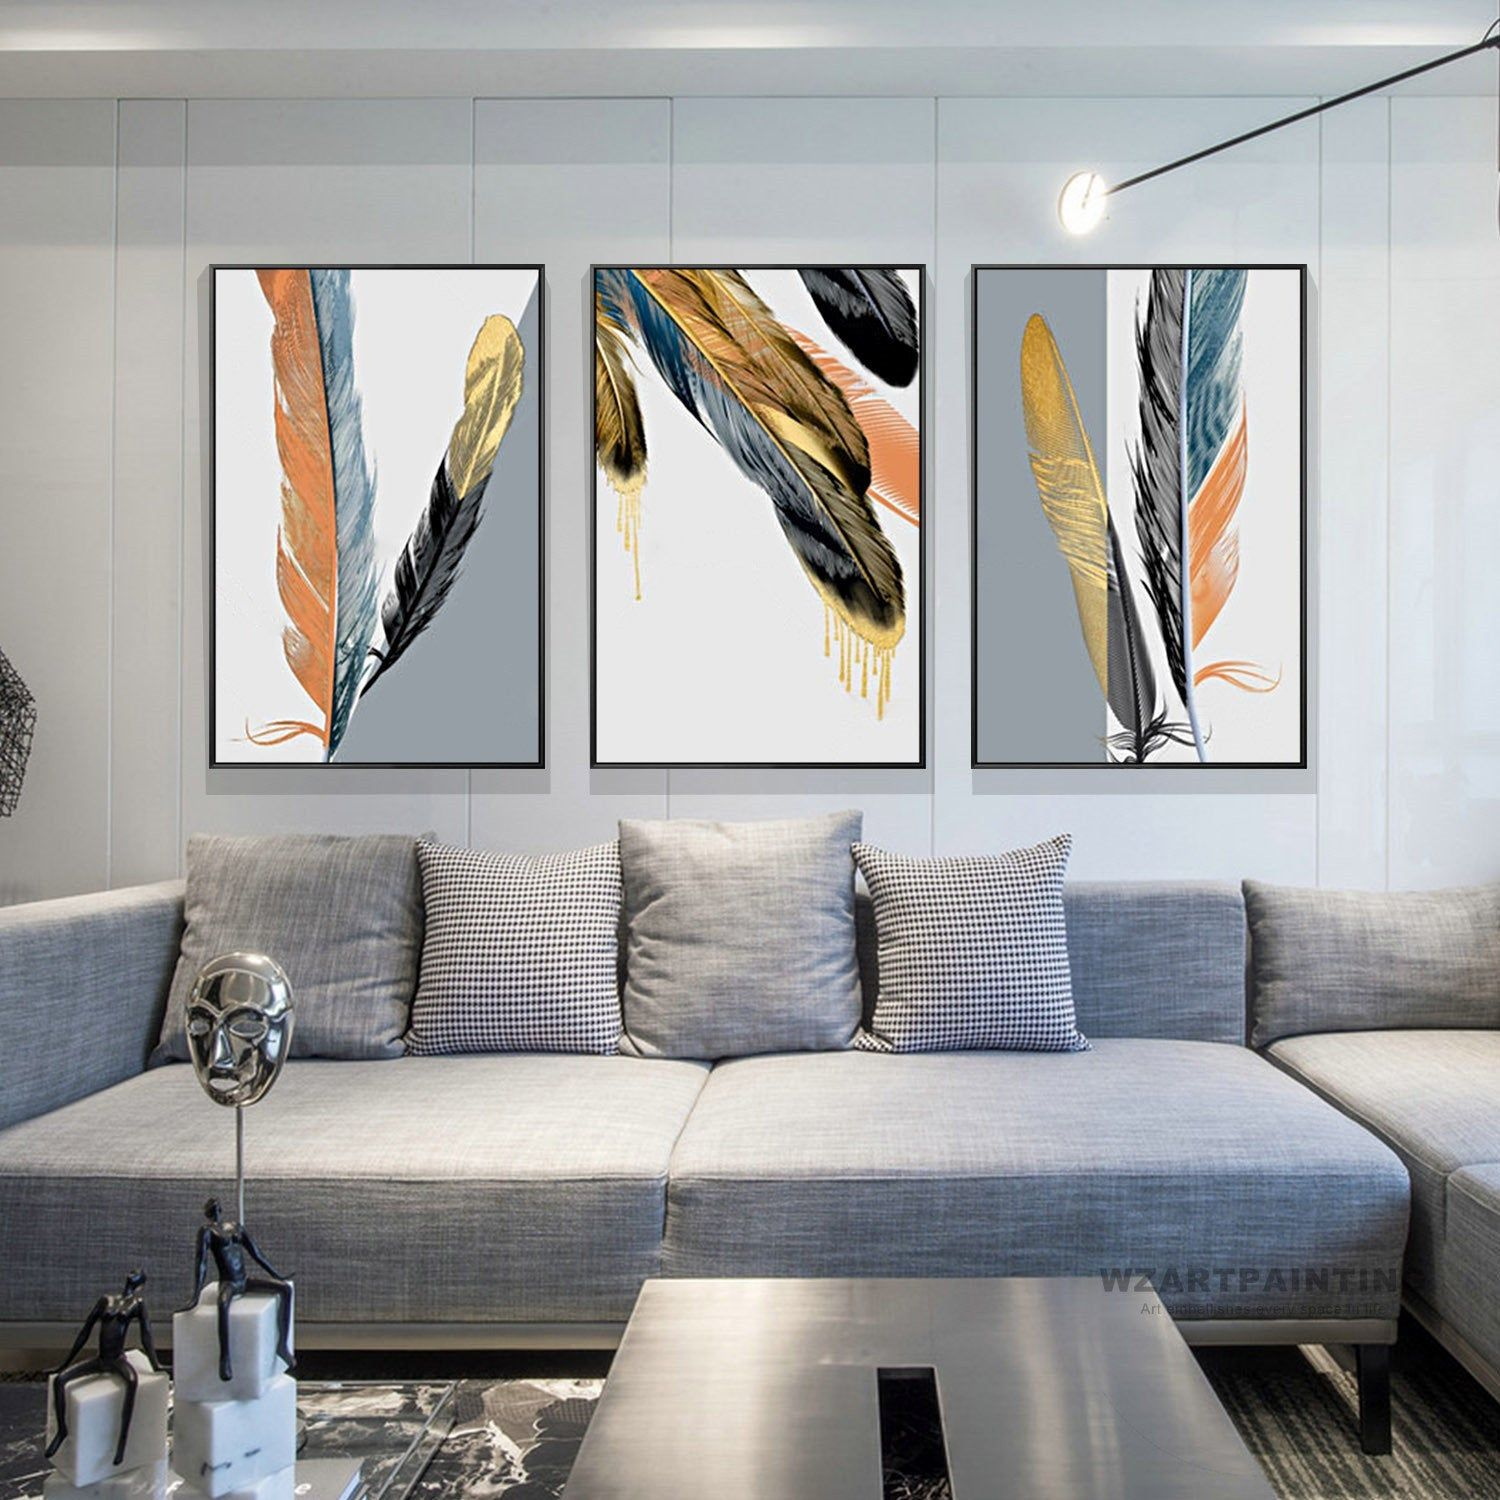 Framed Wall Art Set Of 3 Prints 3 Piece Modern Abstract Navy Blue Yellowblack Feather Print Feat Grey Wall Art Framed Wall Art Sets Dark Grey Couch Living Room